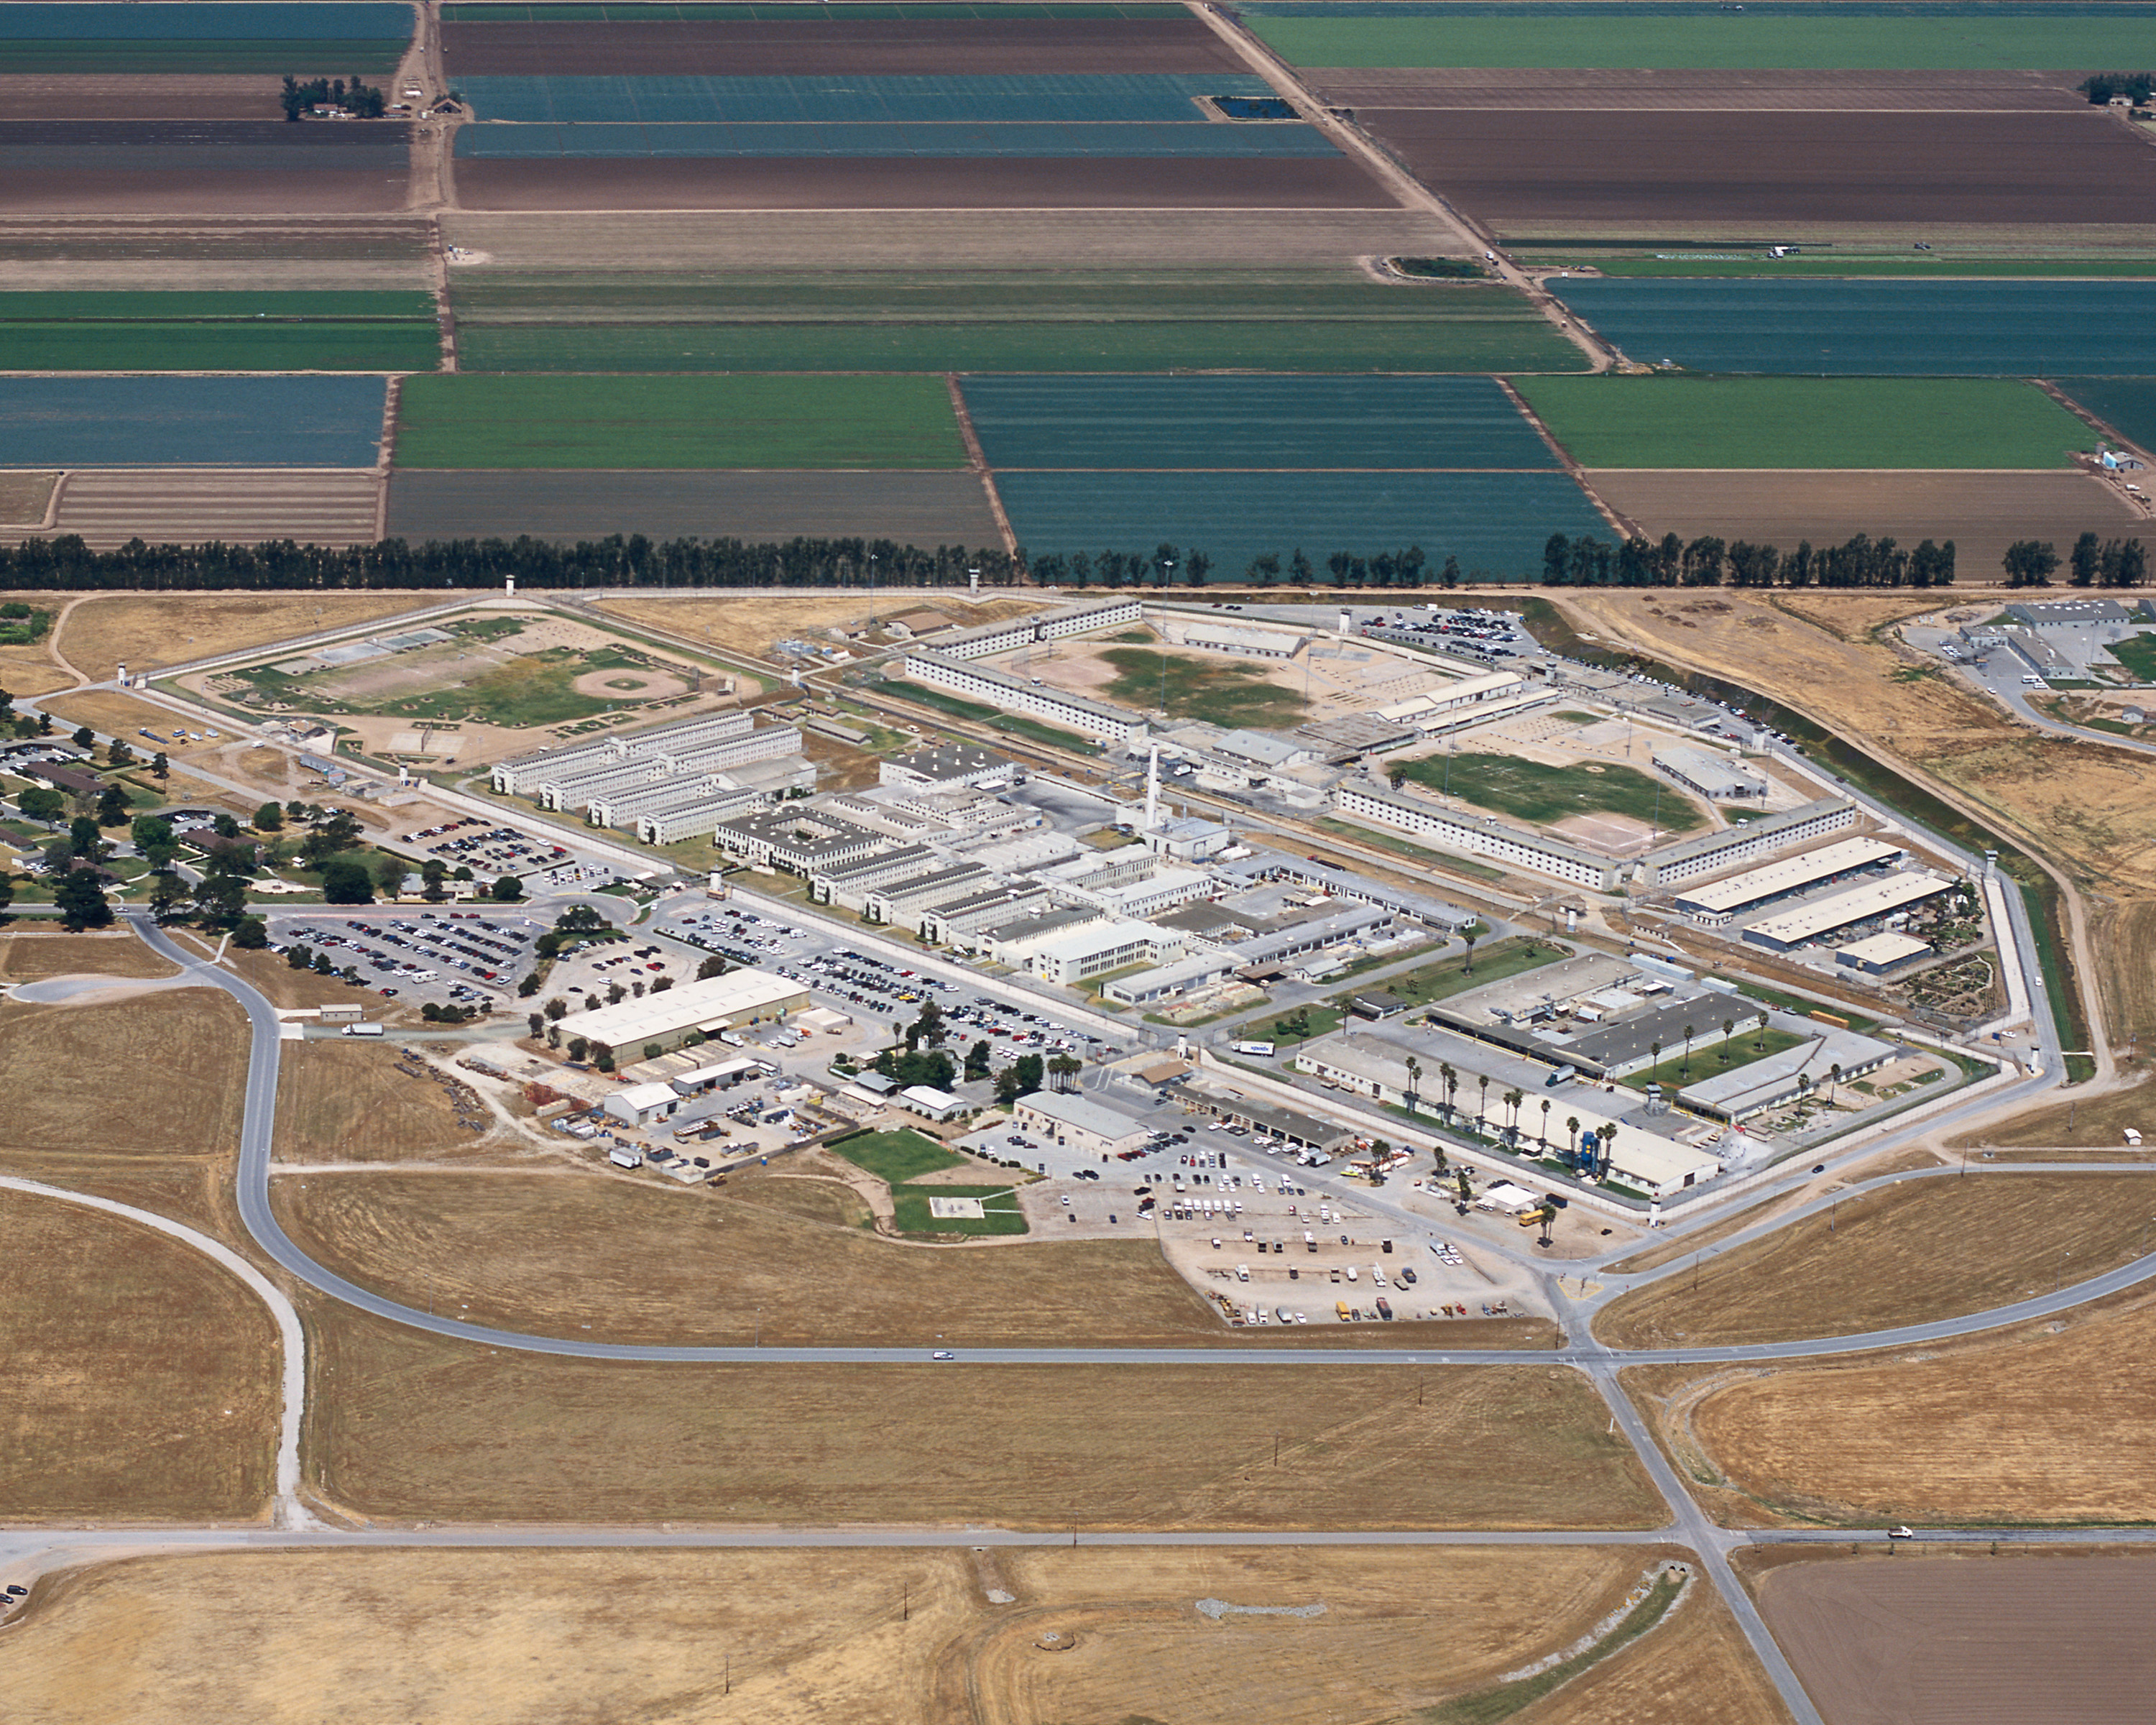 Arial shot of prison surrounded by agricultural land.